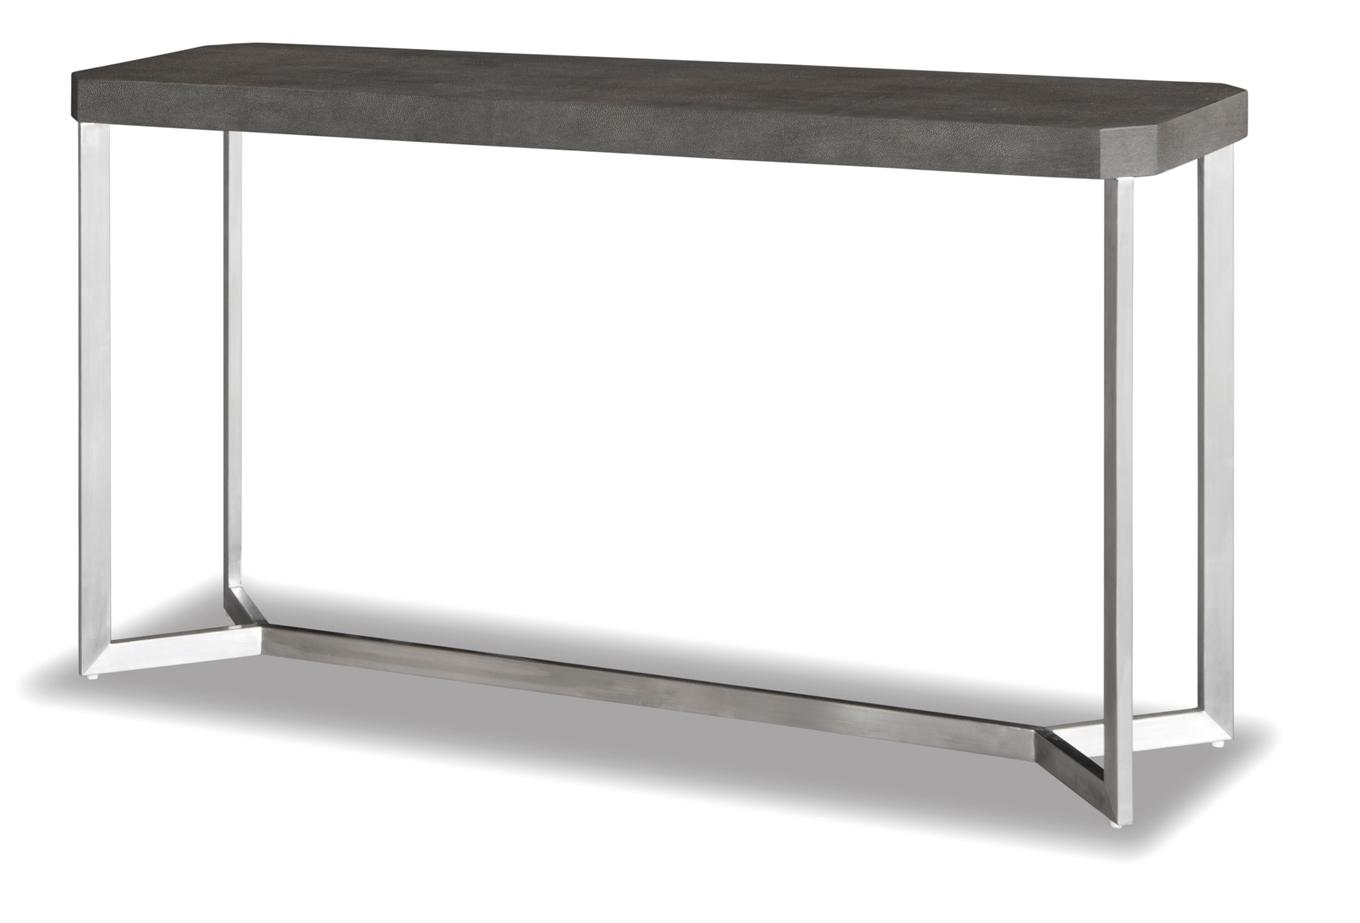 Melbourne console table ap mls 601632 console tables tables melbourne console table ap mls 601632 shagreen w brushed stainless geotapseo Gallery